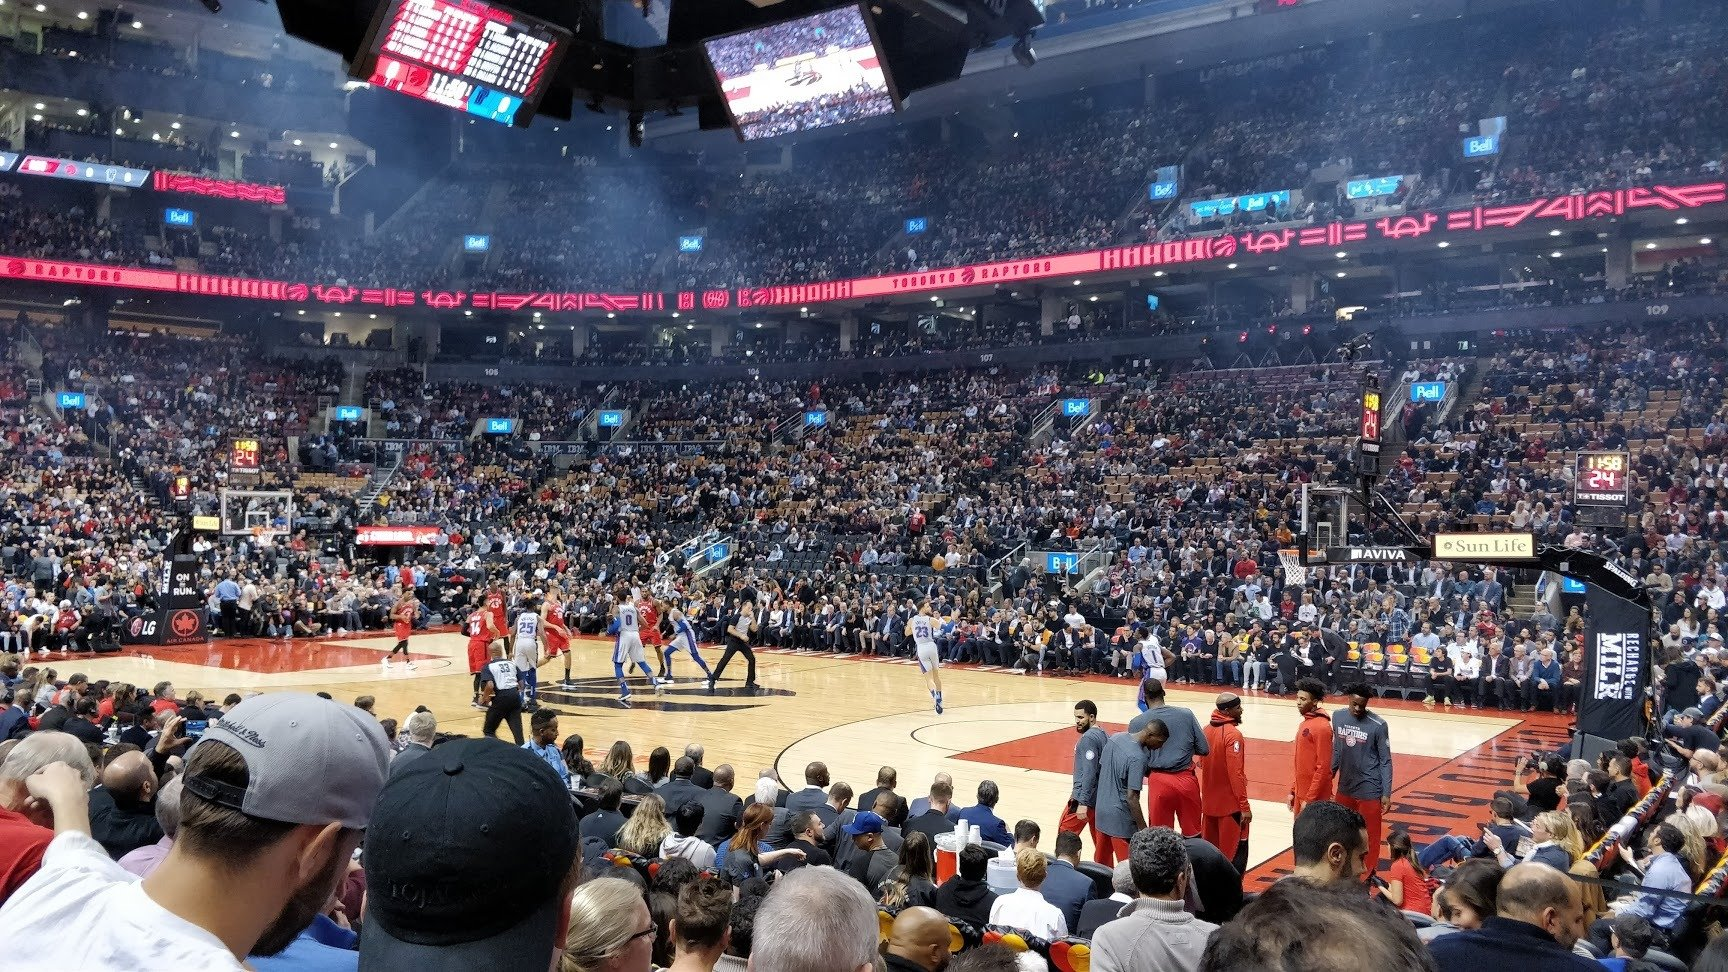 Scotiabank Arena Section 118 Row 8 Seat 1